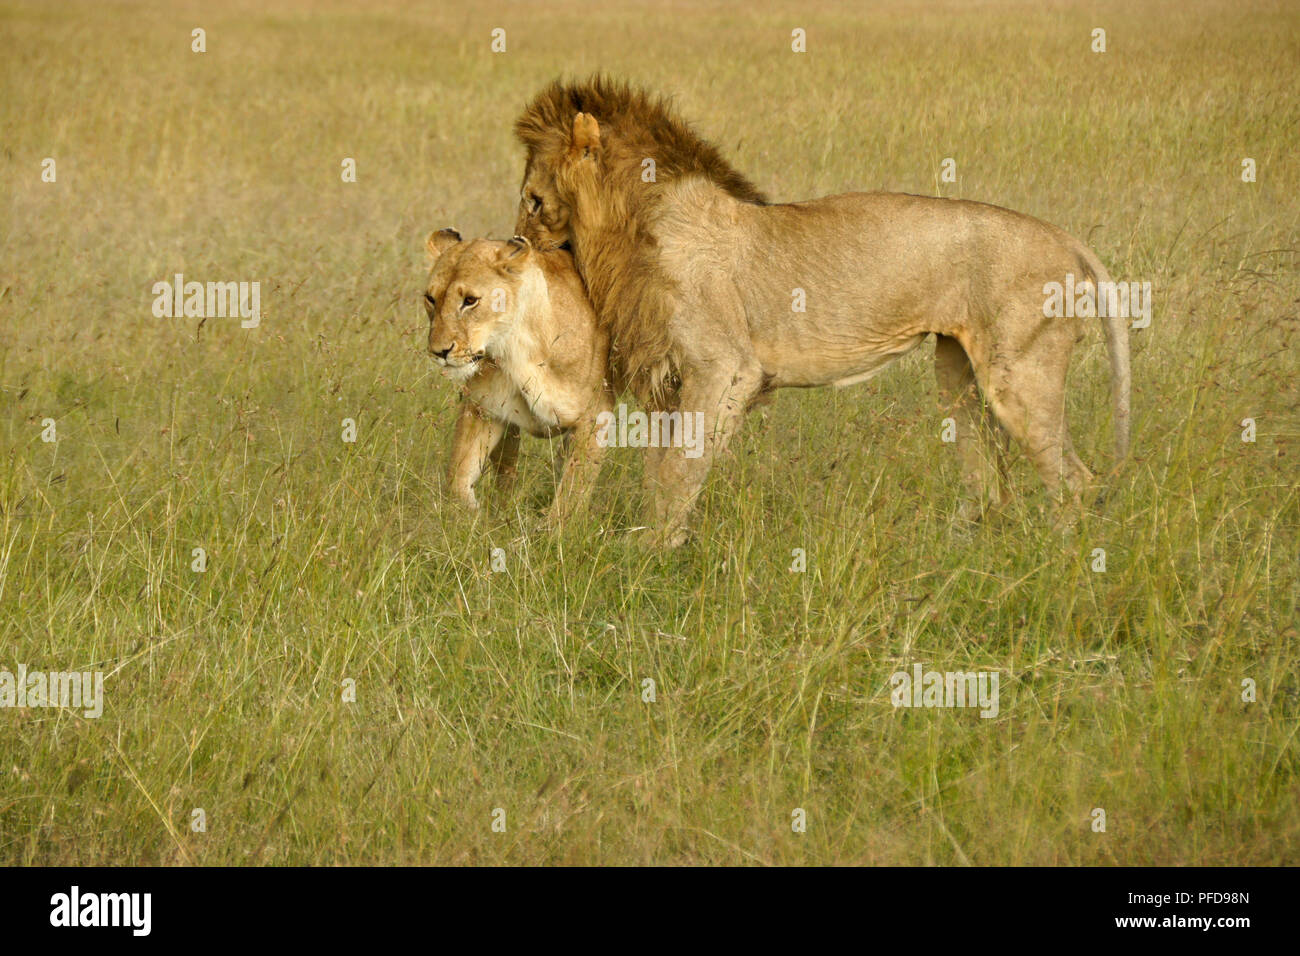 Lions preparing to mate in long grass, Masai Mara Game Reserve, Kenya - Stock Image